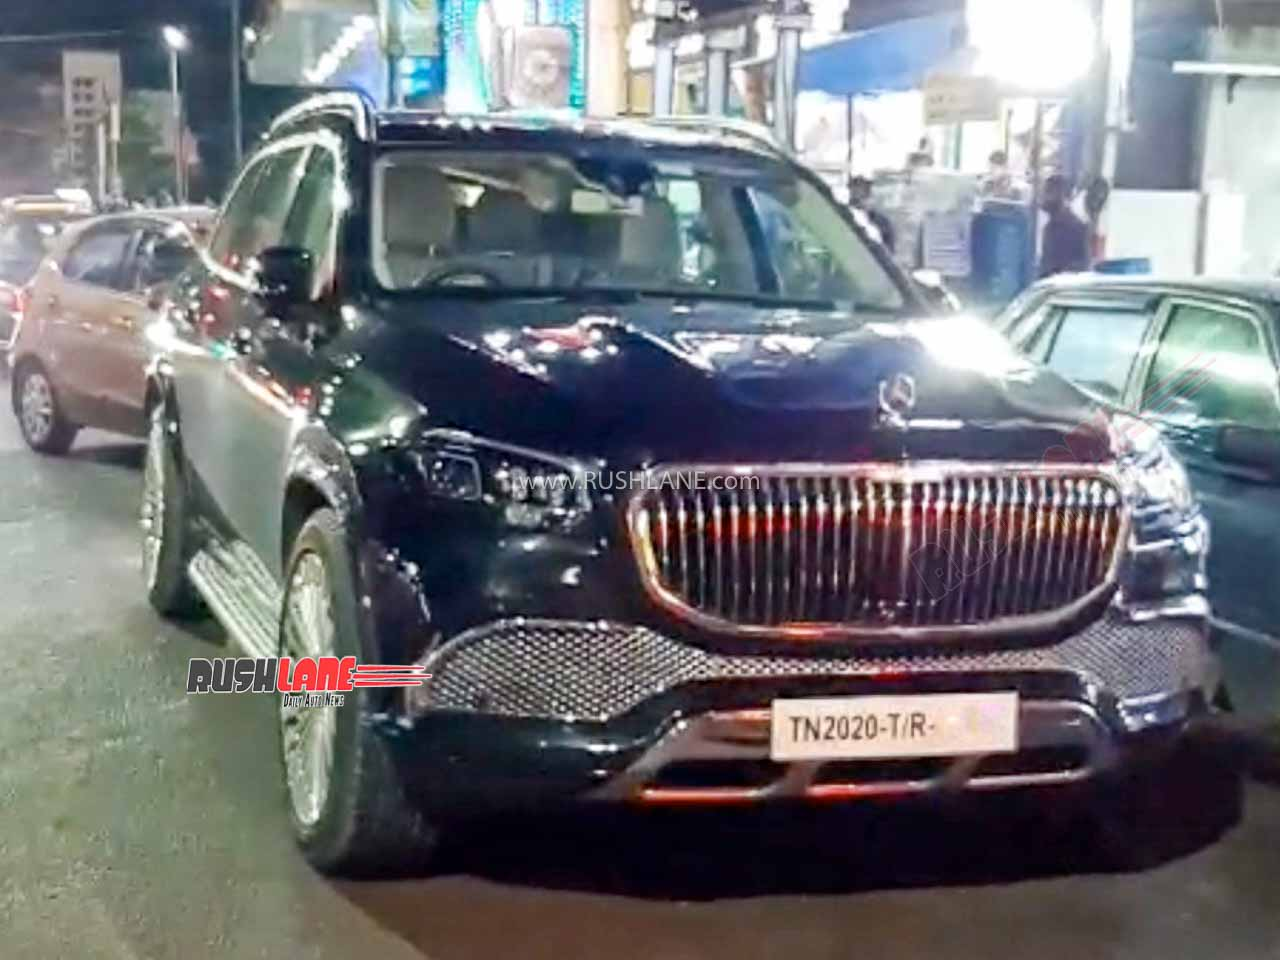 Mercedes Gls Suv With Maybach Mod Kit Spotted In India